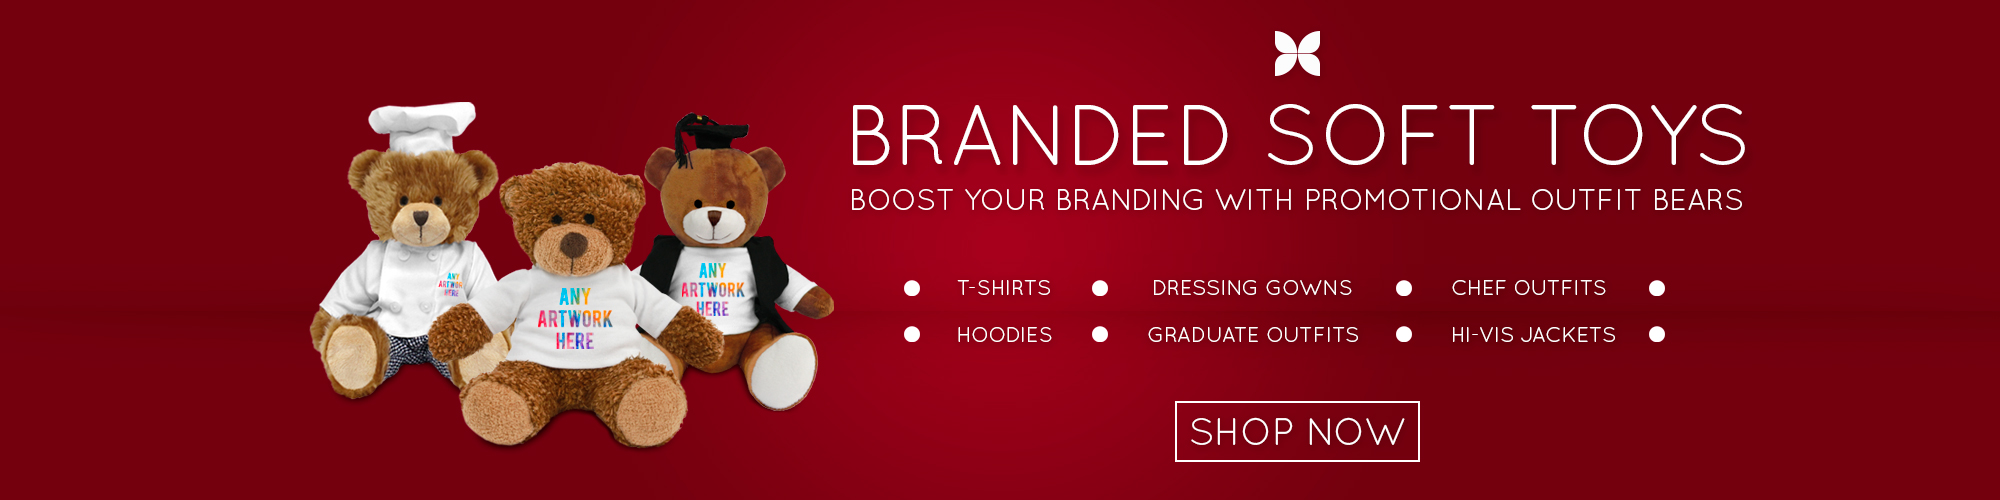 Promotional Products | Branded Outfit Bears - Boost your Branding with Promotional Outfit Bears